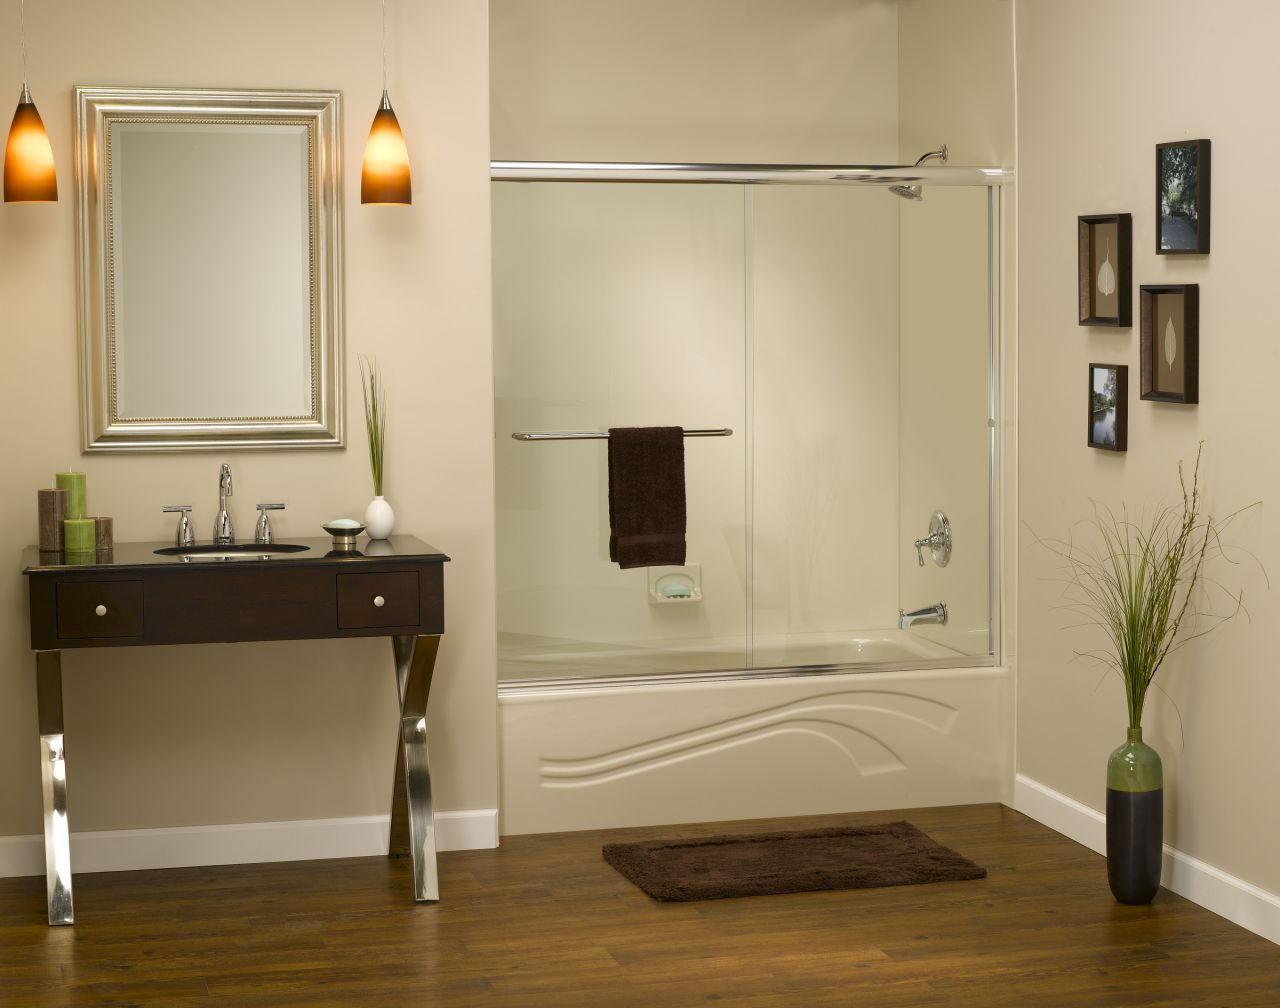 Cost Effective Bathtub Alcove Remodeling Ideas To Ring In The New - Cost effective bathroom renovations